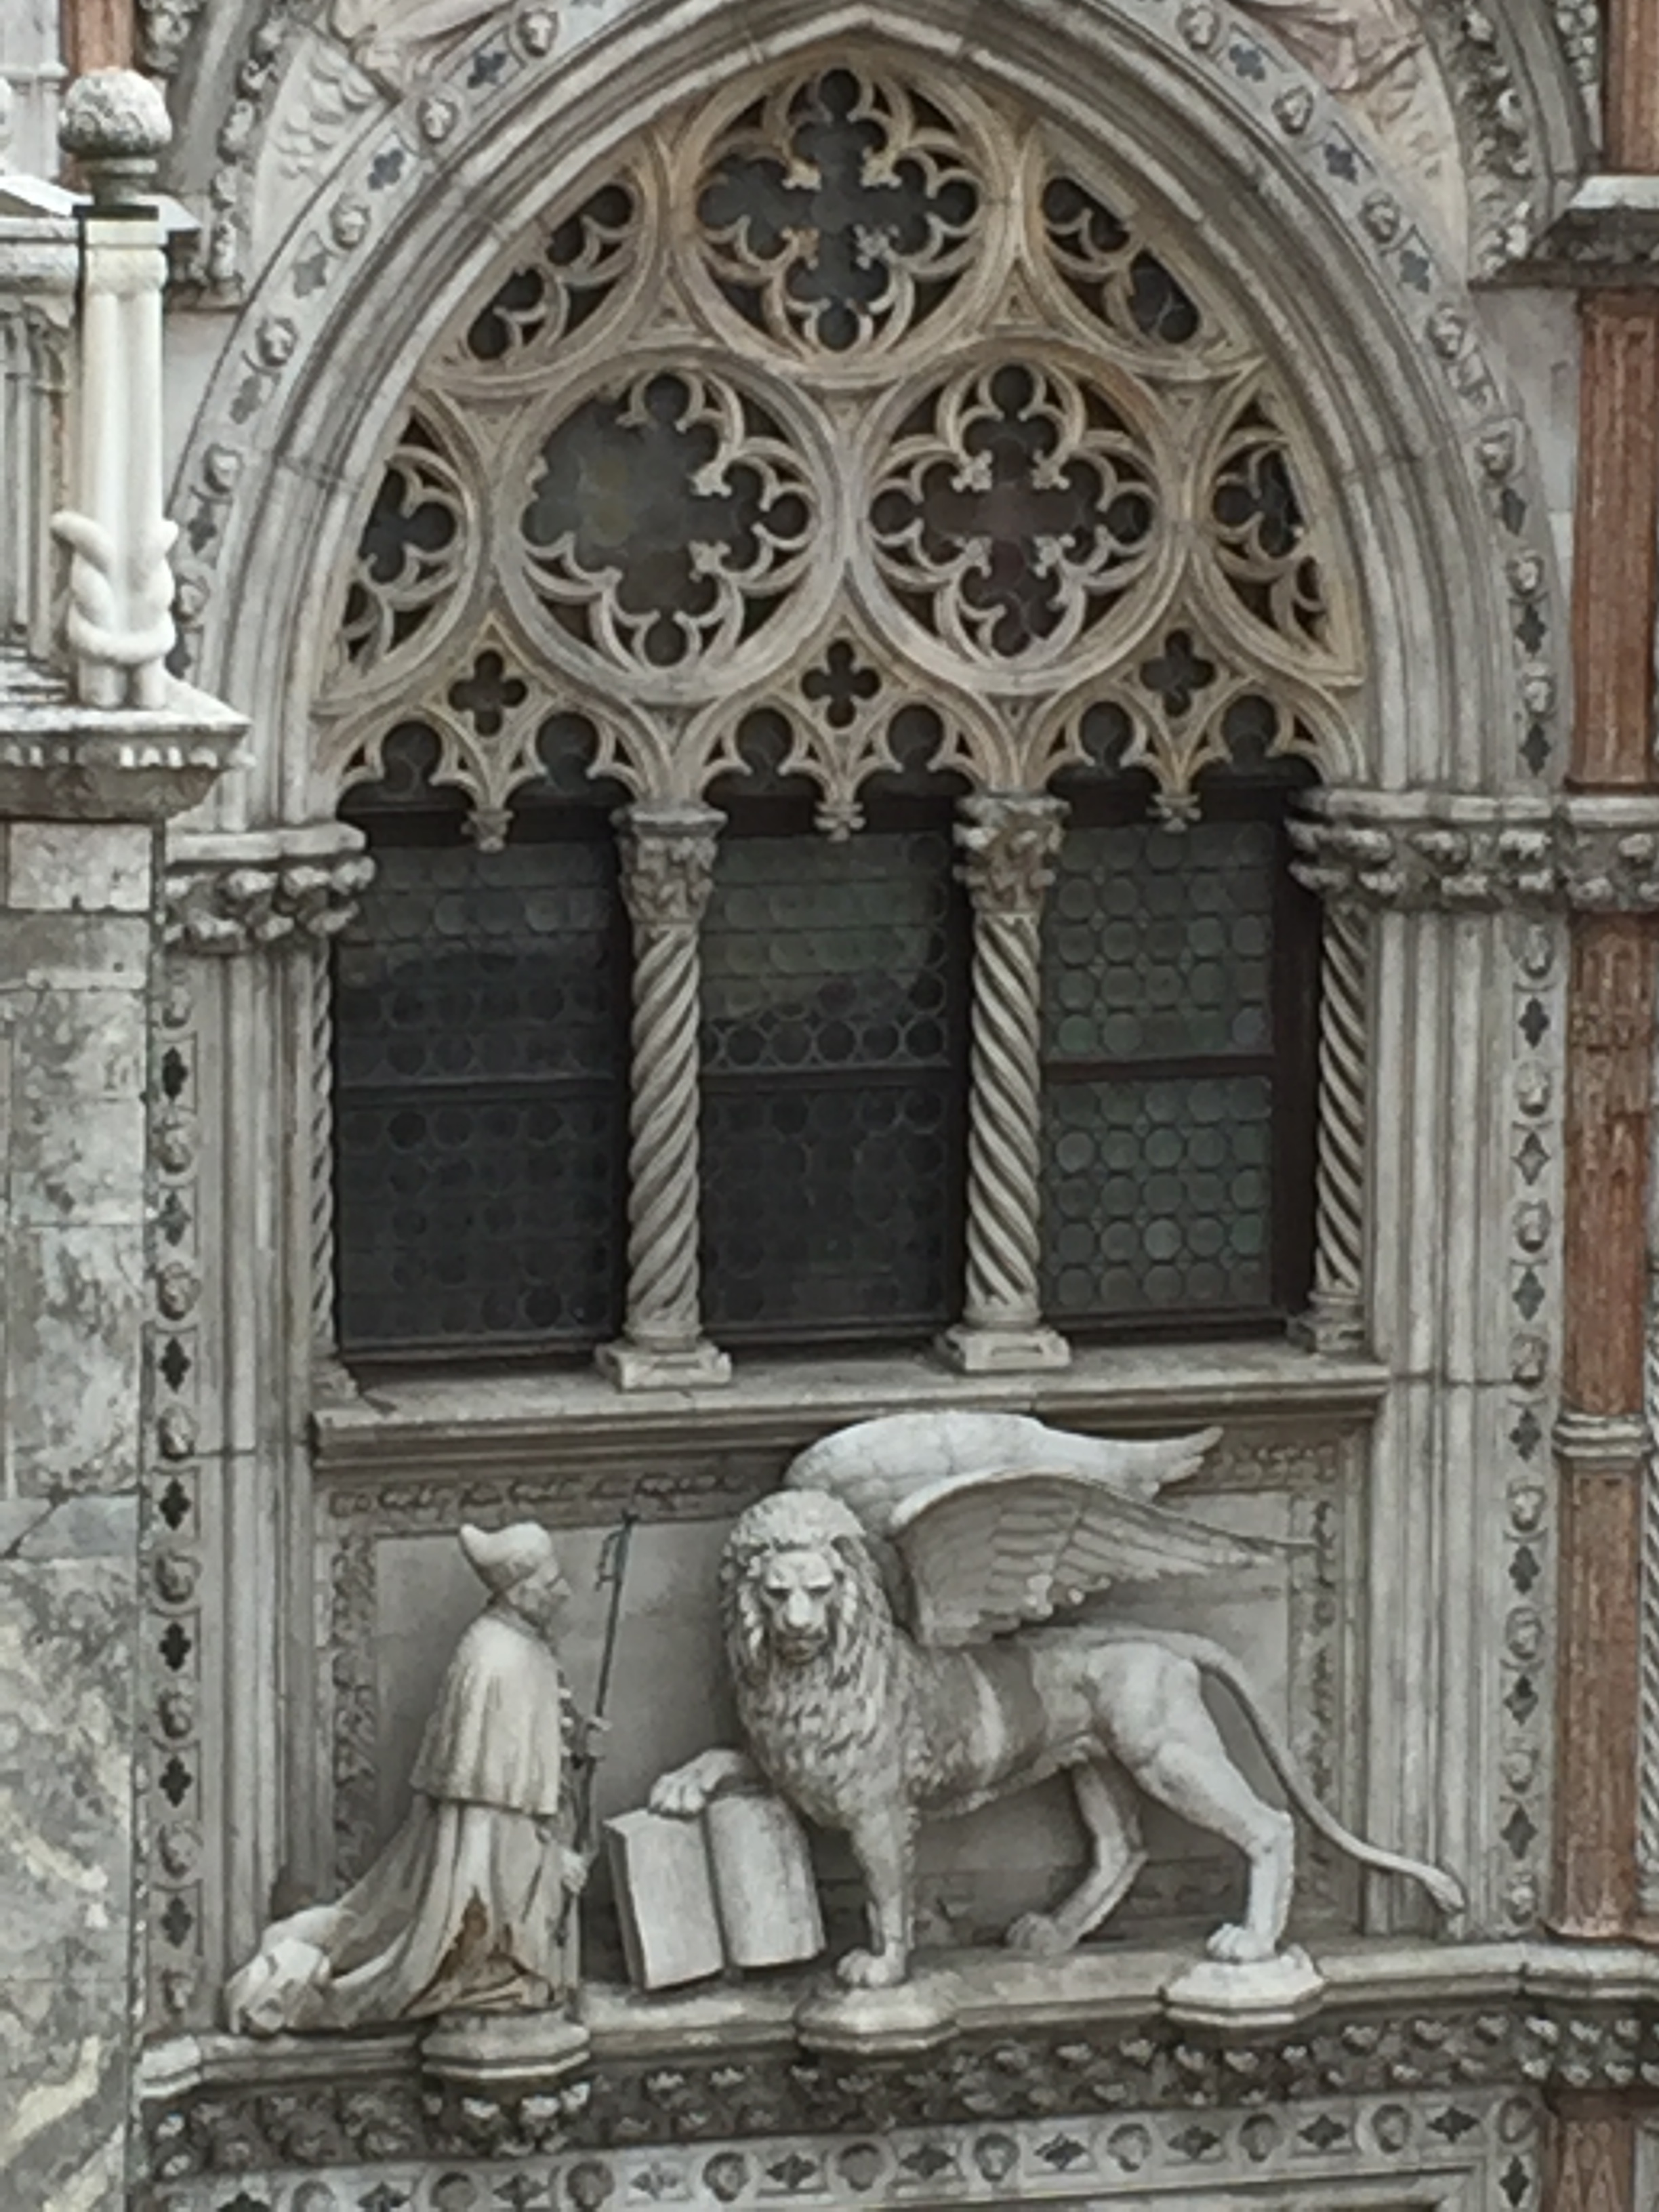 venice doge palace winged lion IMG_5903.JPG